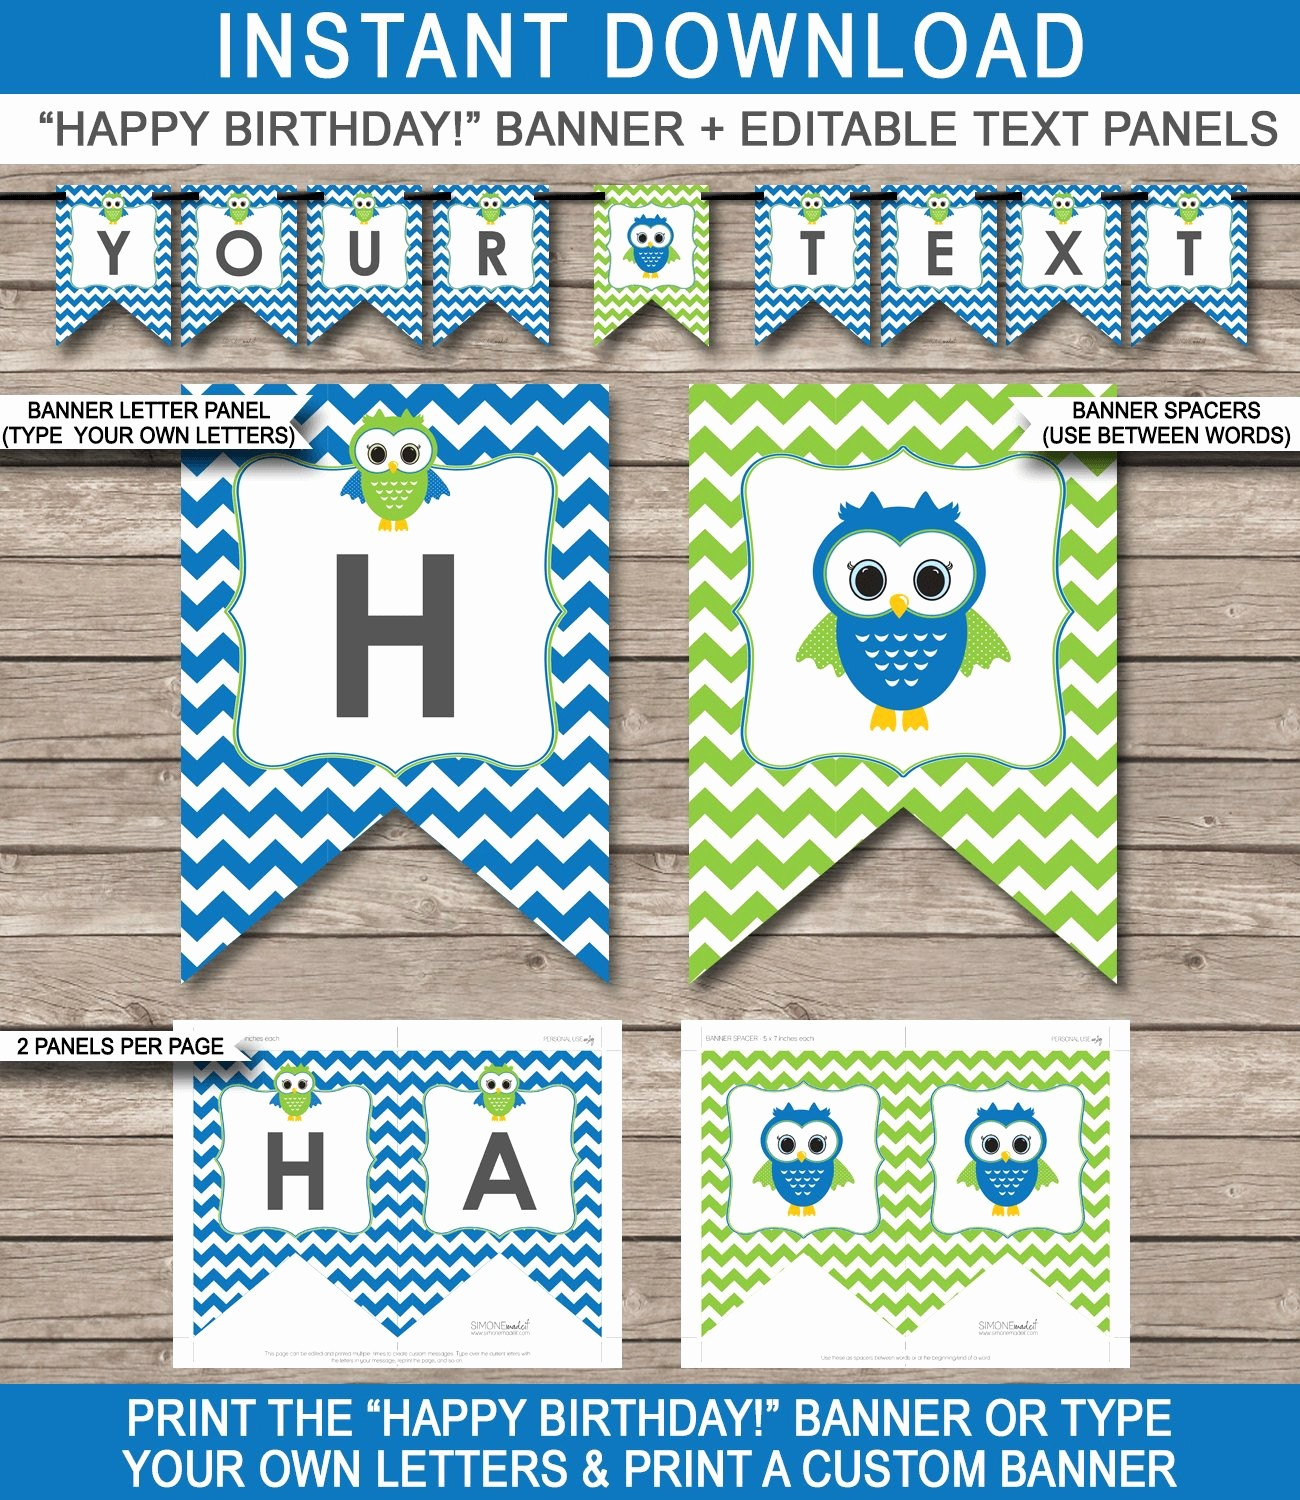 Happy Birthday Banner Print Out Lovely Owl Party Banner Happy Birthday Banner Custom Banner